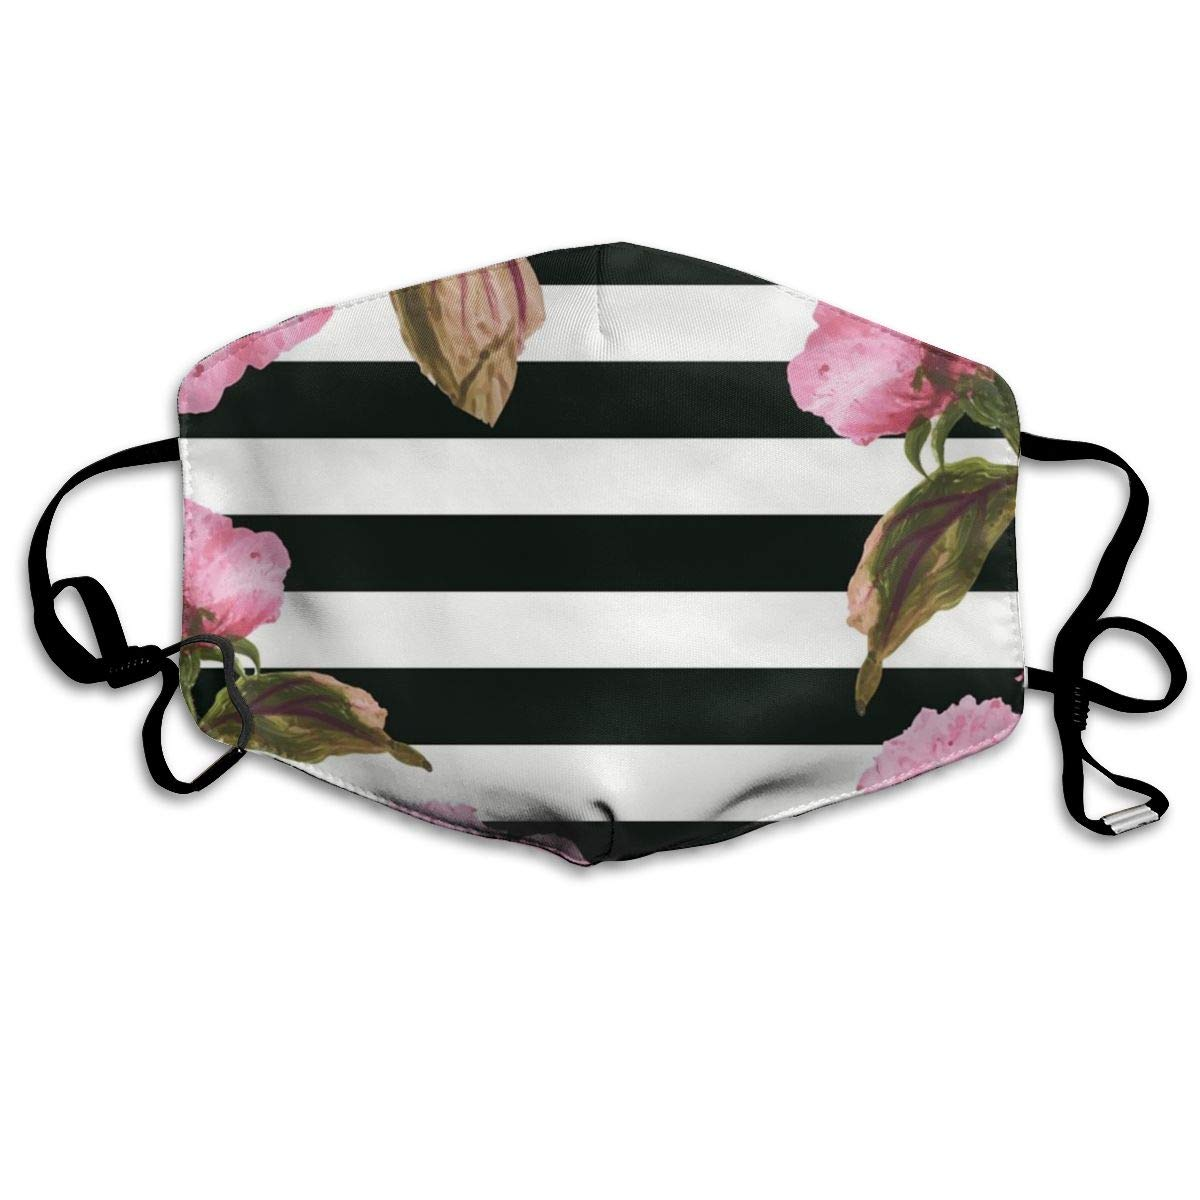 Mouth Mask Striped Flowers Print Masks - Breathable Adjustable Windproof Mouth-Muffle, Camping Running For Women And Men